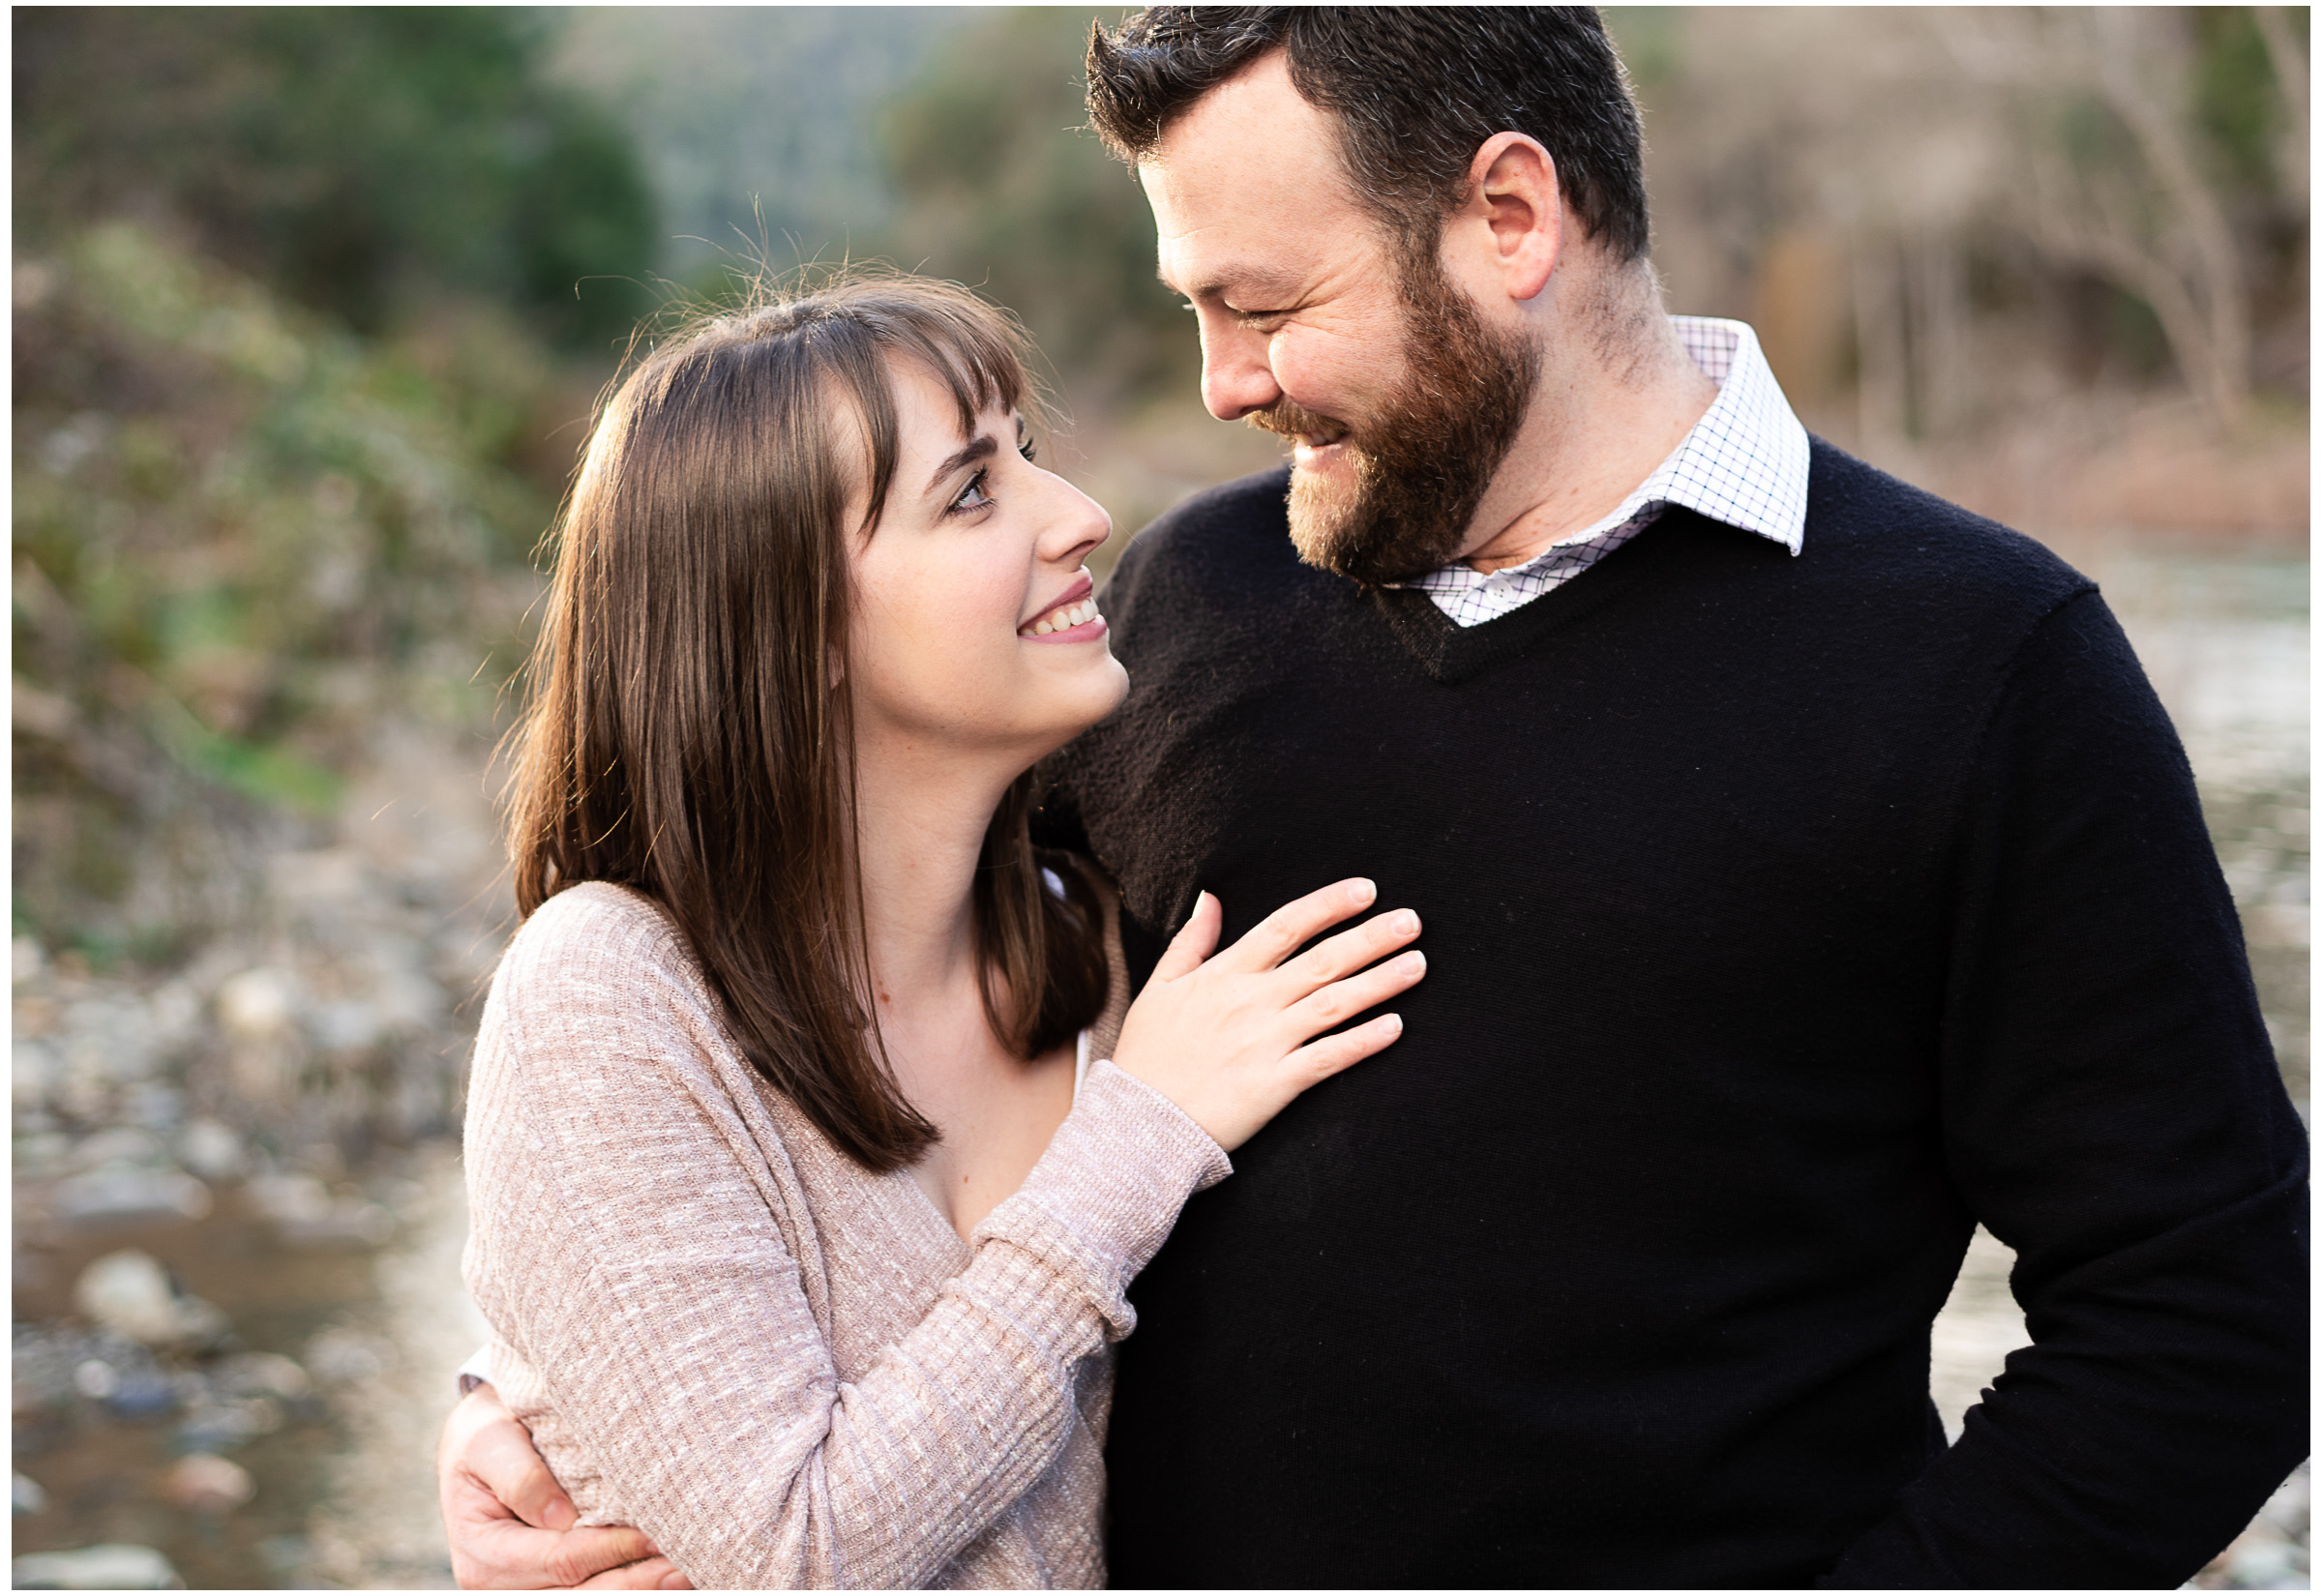 Auburn Engagement Session - Sacramento Photographer - Justin Wilcox Photography - 10.jpg